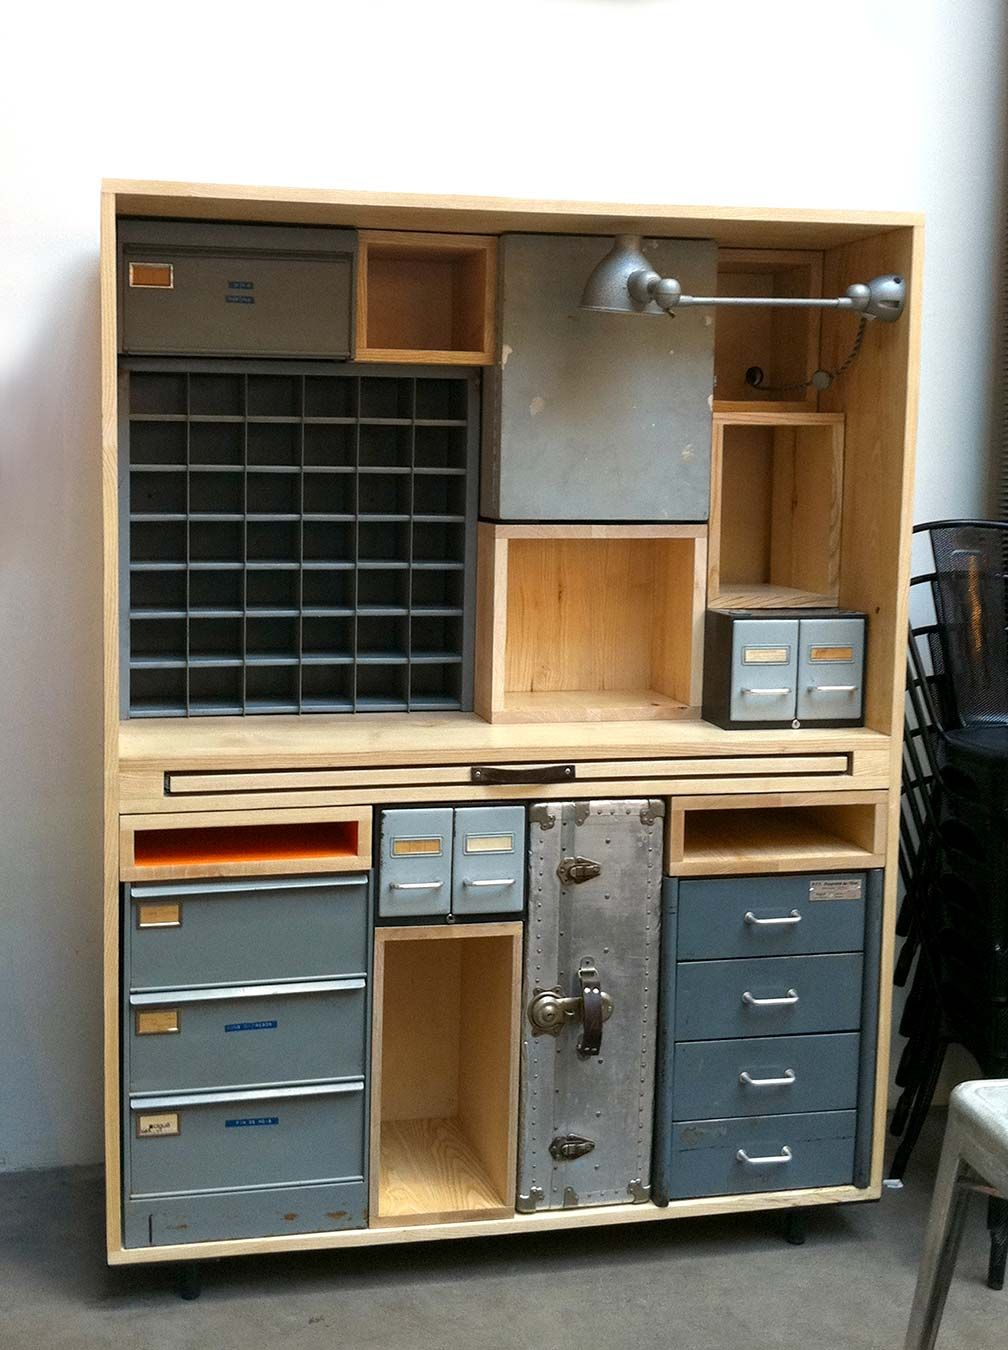 Stk Cigue Rolling Workbench Home Office Storage Avec Images Stockage Atelier Rangement Rangement Outils